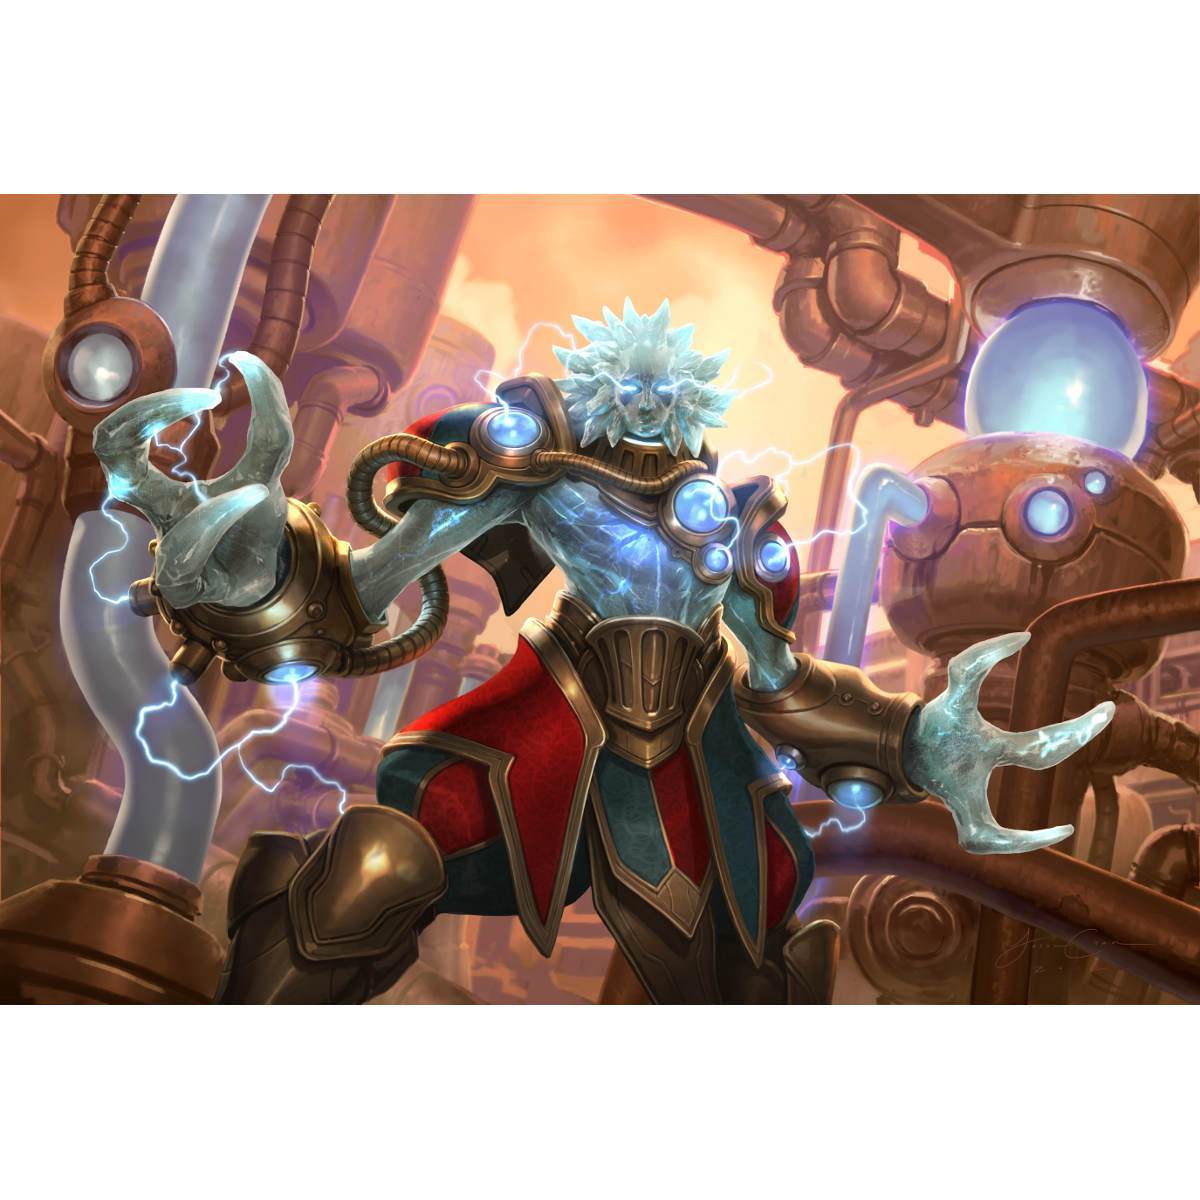 Melek, Izzet Paragon Print - Print - Original Magic Art - Accessories for Magic the Gathering and other card games